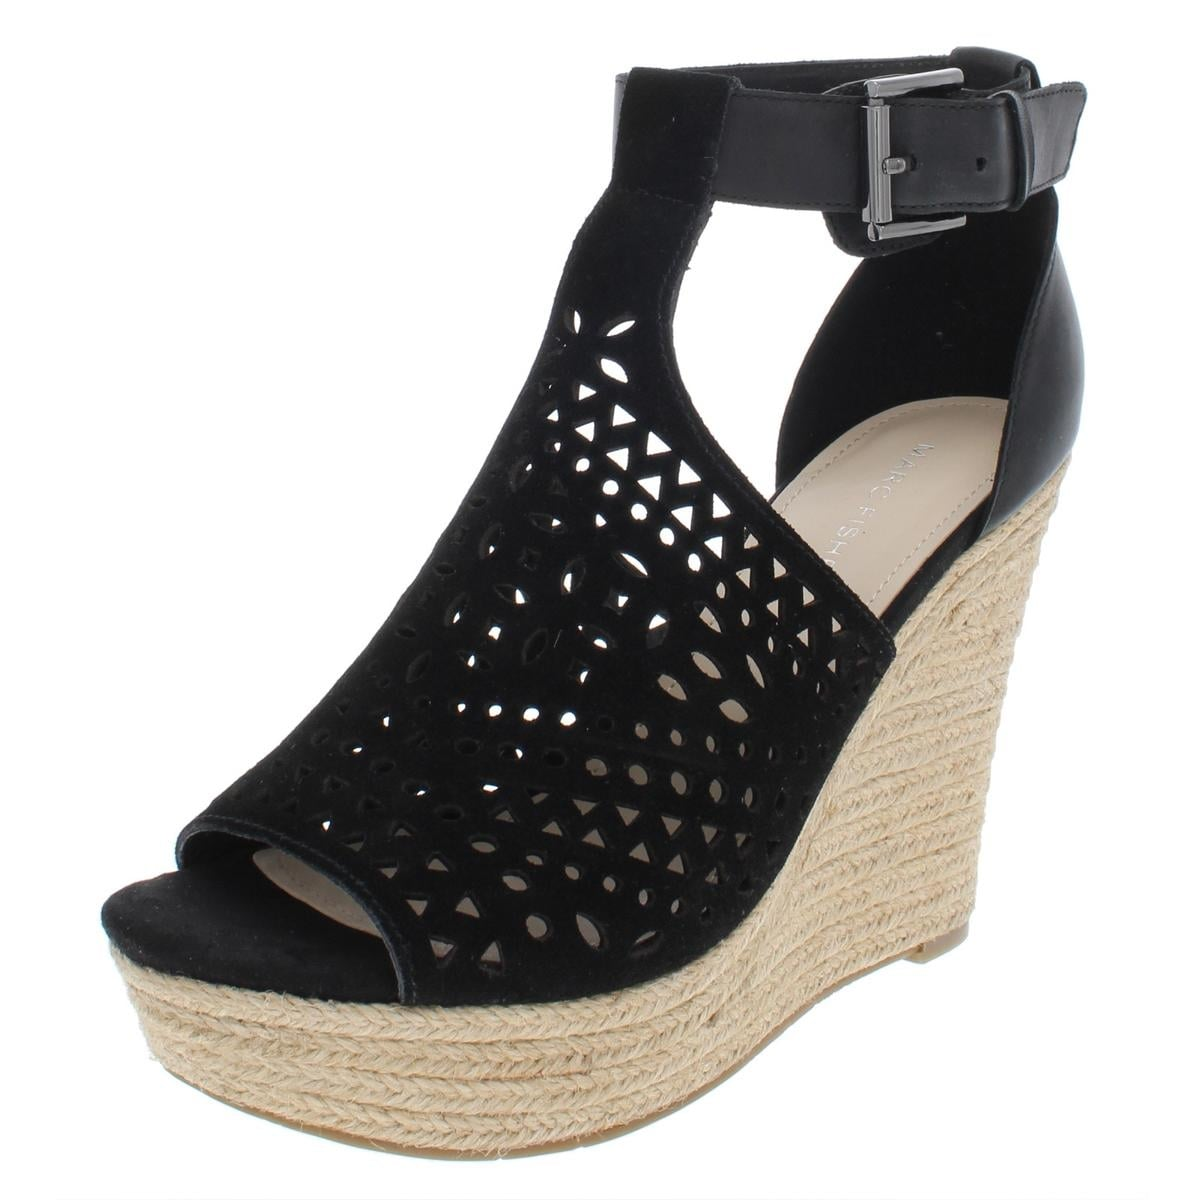 16e8a7ca9a8 Shop Marc Fisher Womens Hasina Wedge Sandals Perforated Suede - Free  Shipping Today - Overstock - 27638577